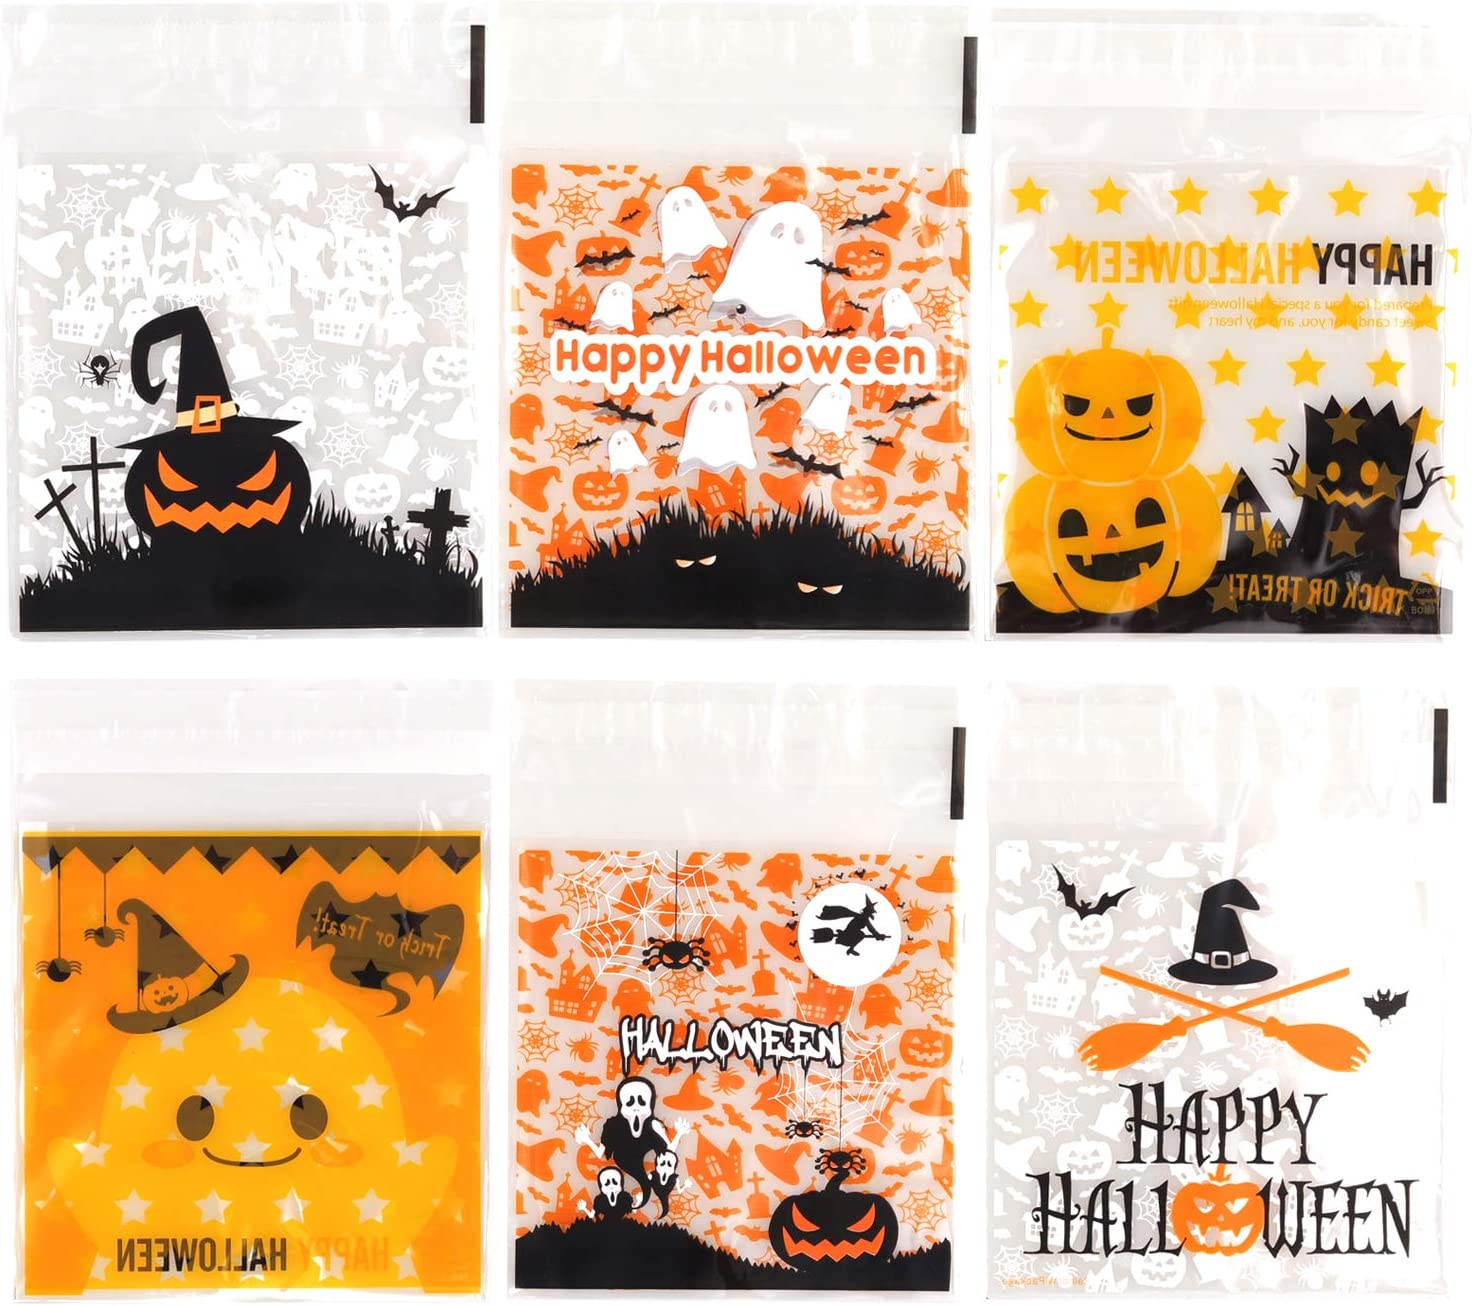 300 Pcs Halloween Treat Bags Self Adhesive Candy Bag Clear Plastic Cellophane Cookie Bags for Halloween Treats, Homemade Craft, Party Favors